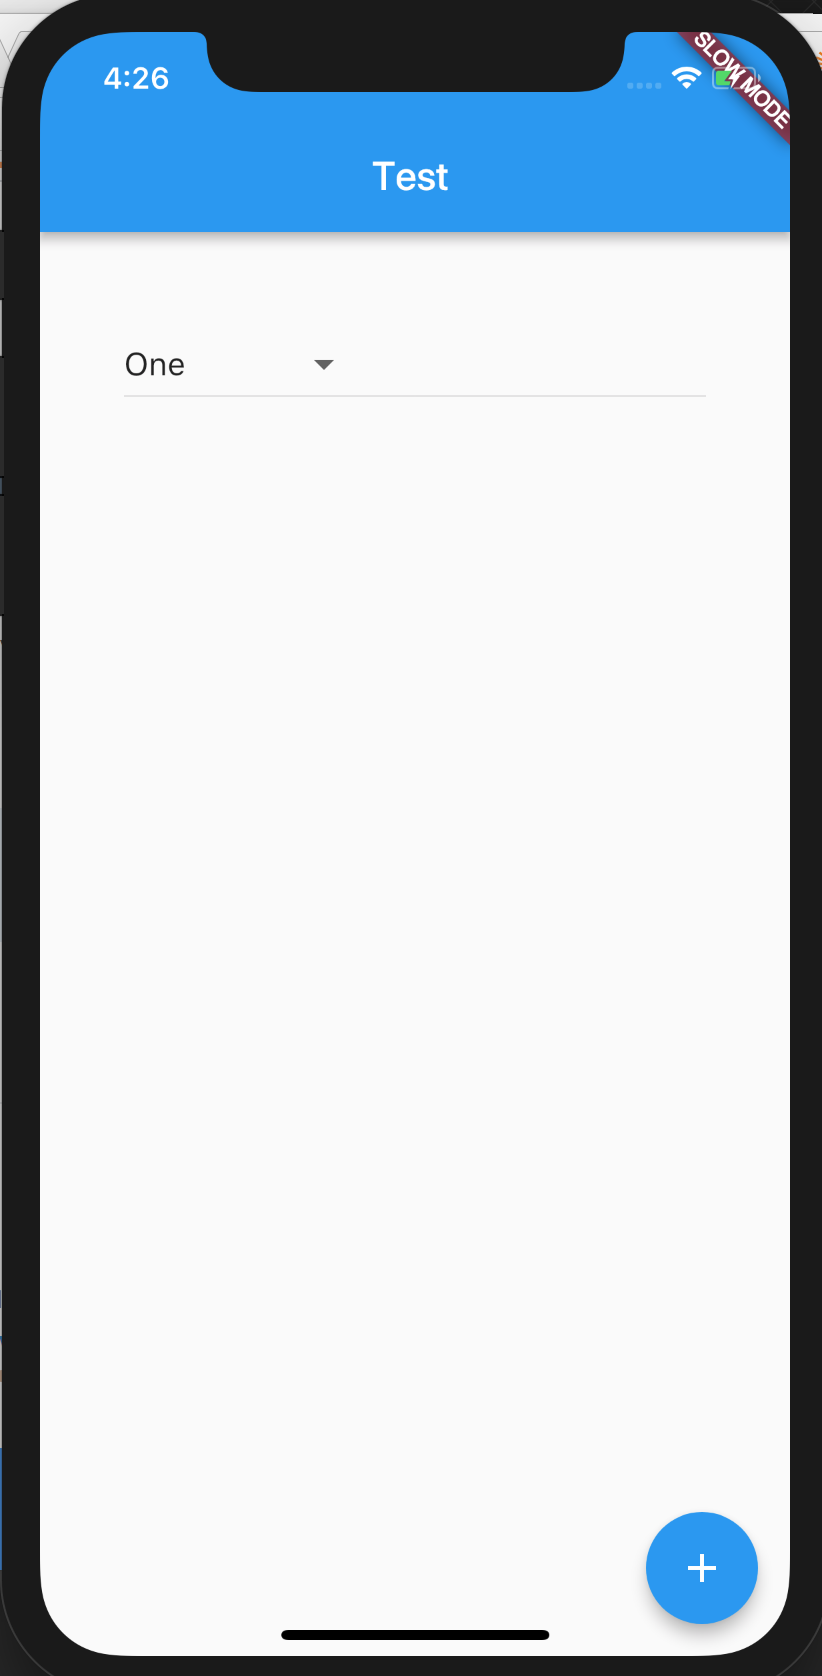 Document that showDialog creates new context and that